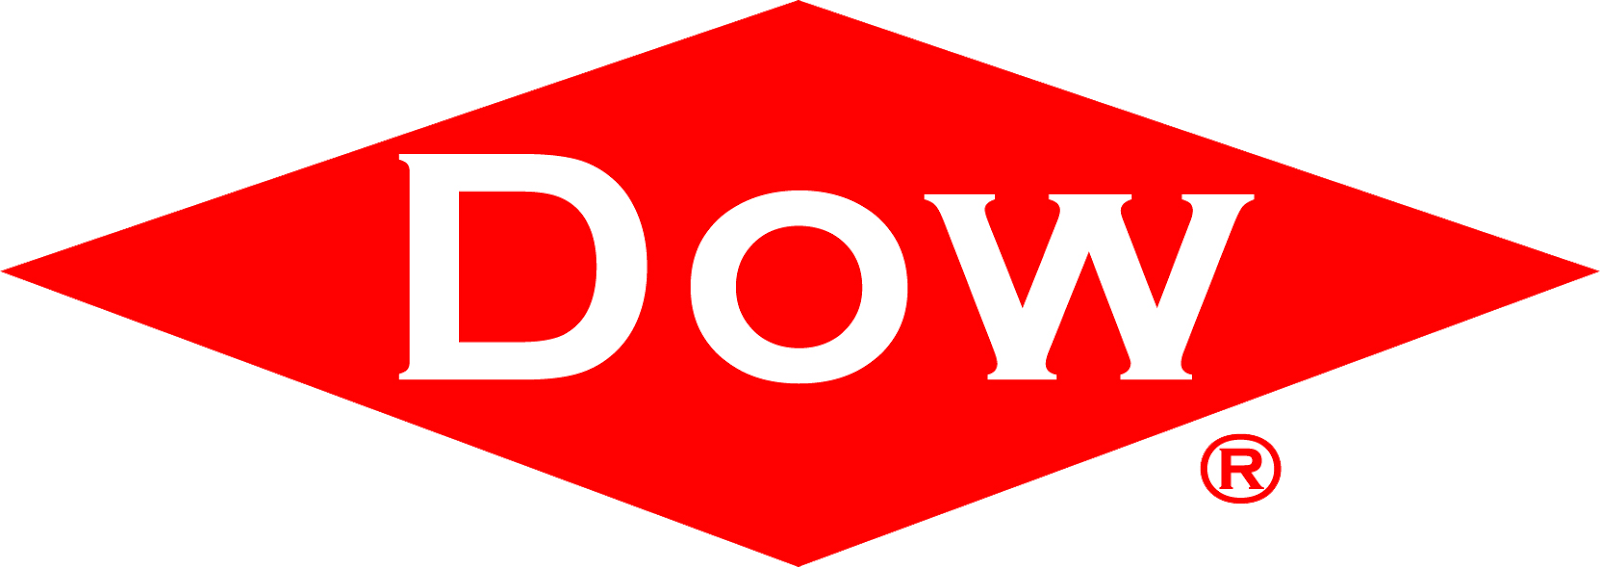 DOW-logo.png